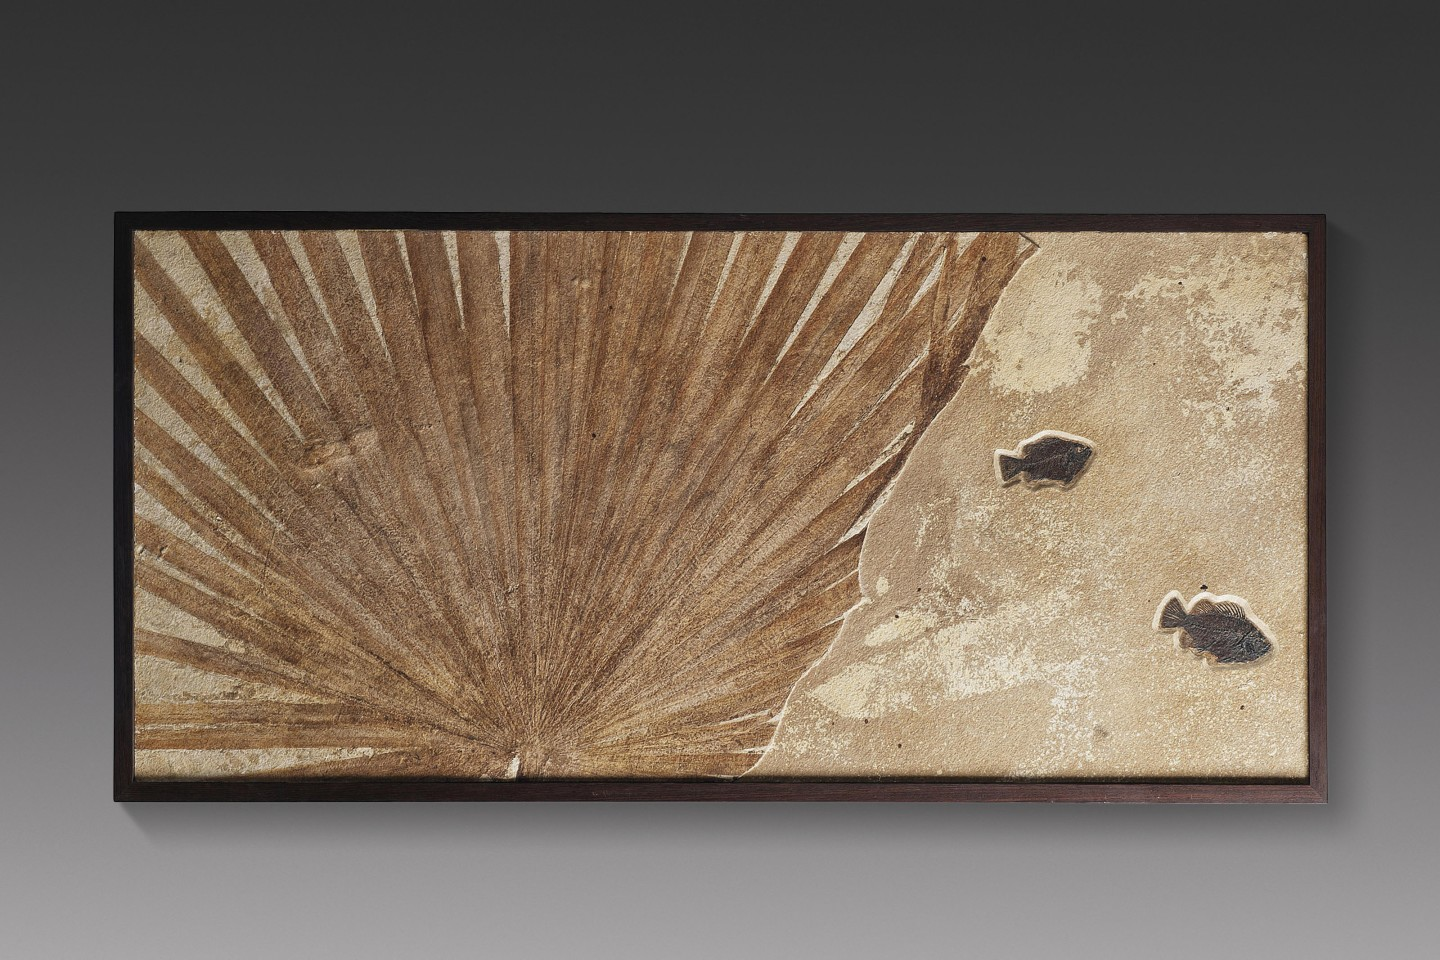 This 25½ x 52¼ inch (65 x 133 cm) wall hanging contains a 50 million-year-old fossil Sablites sp. palm leaf contrasted with two fossilised fish (a 5-inch and 4-inch Priscacara sp.) placed into a lower layer of the limestone block